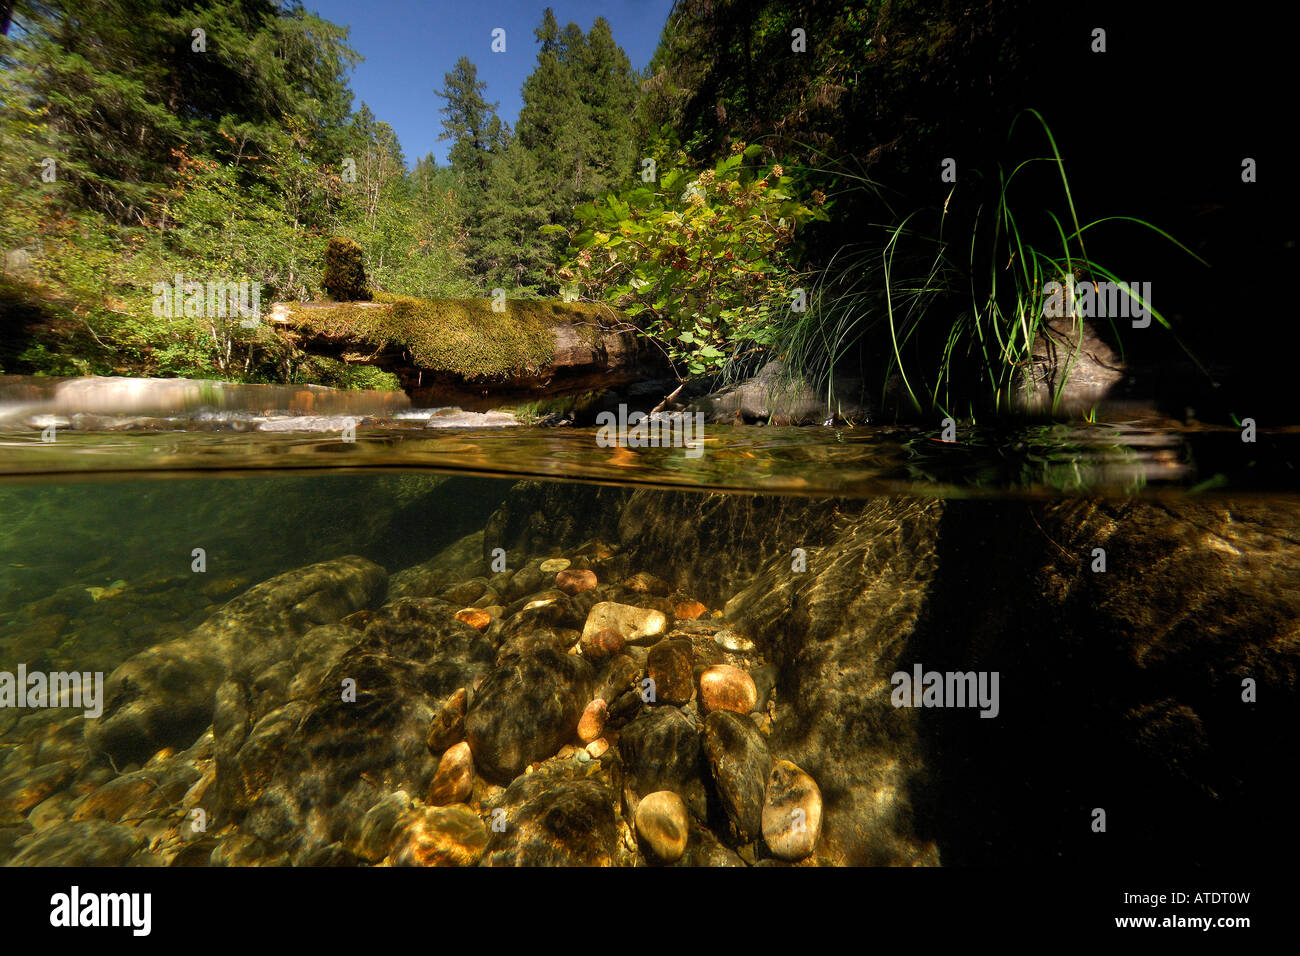 Steelhead Creek Umpqua National Forest Oregon - Stock Image